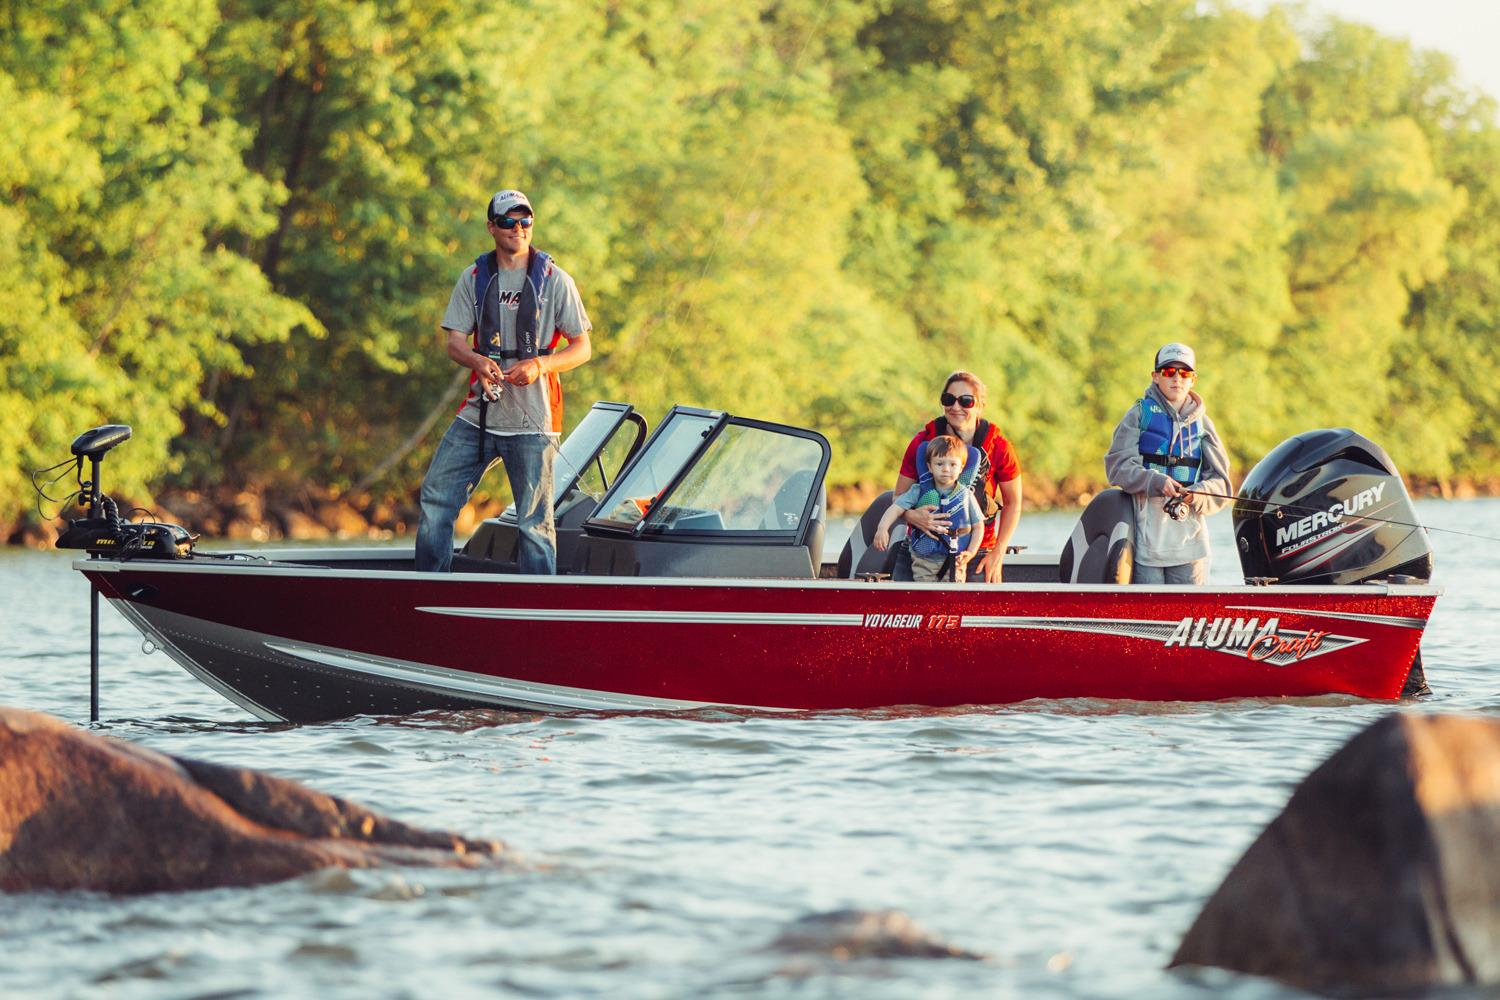 2017 Alumacraft Voyageur 175 Sport in Madera, California